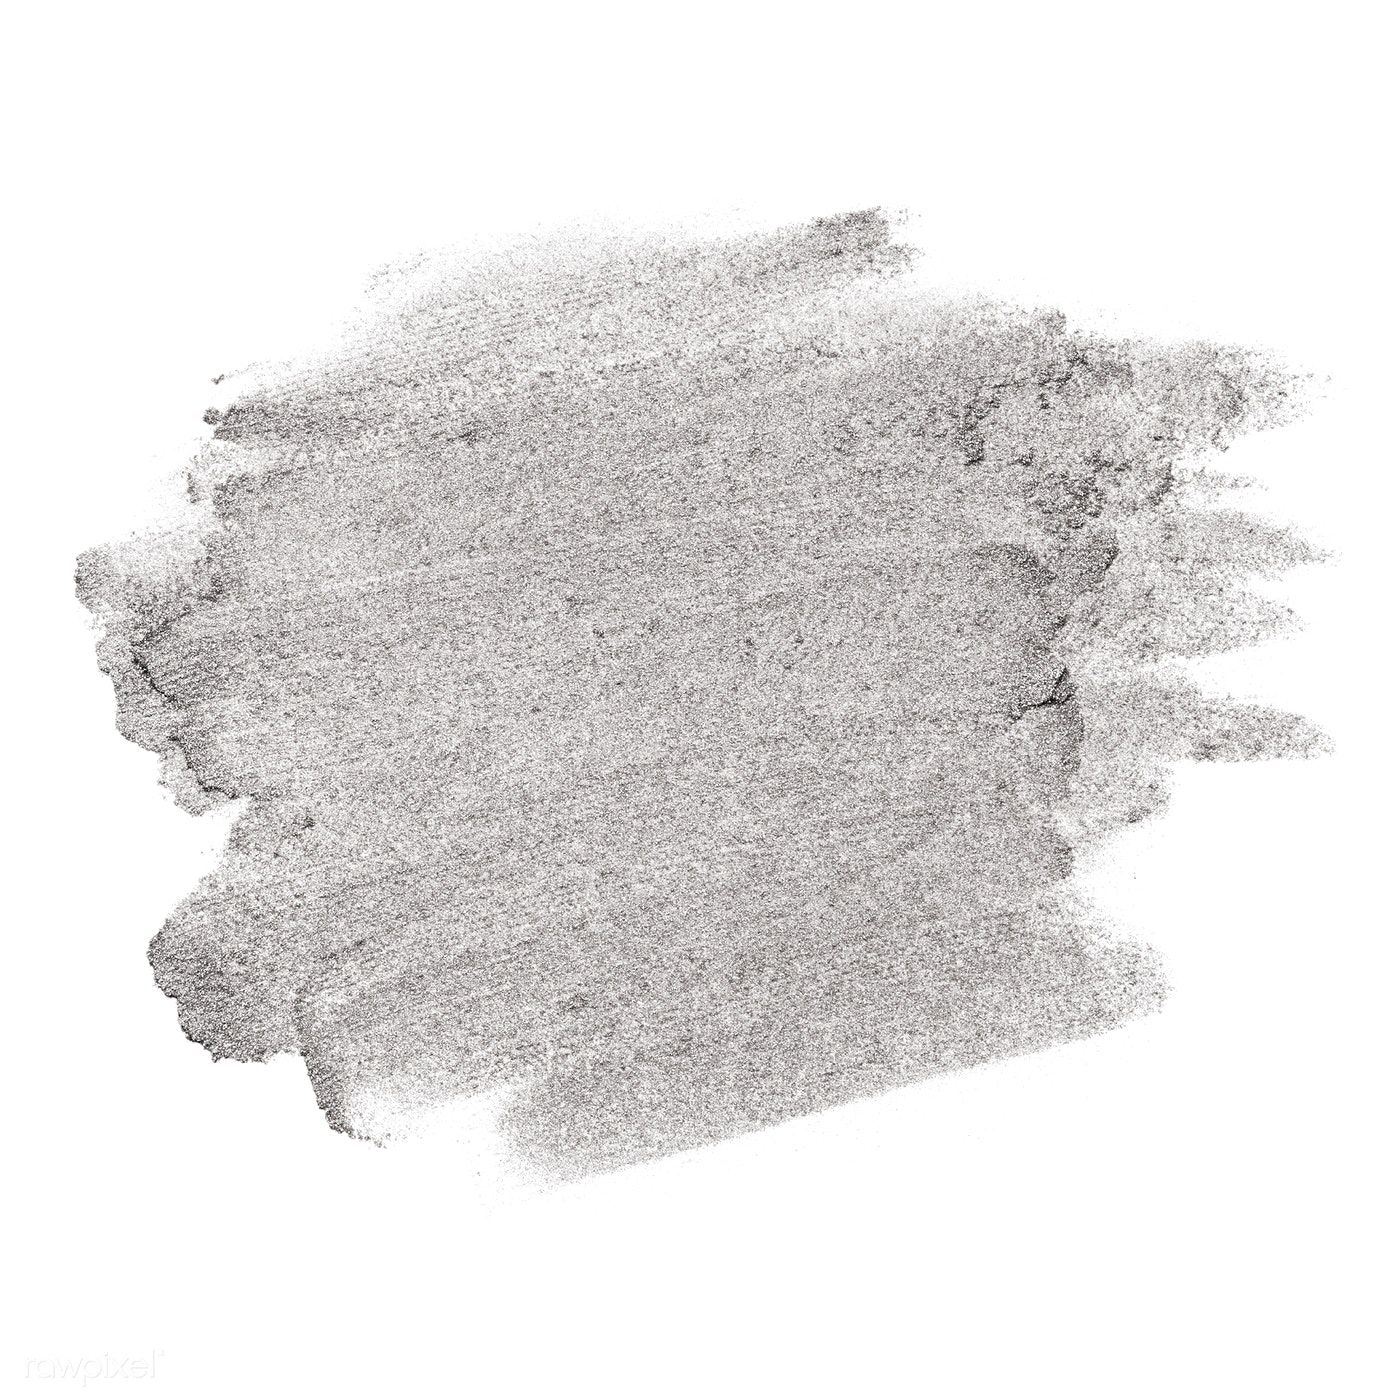 Download Premium Psd Of Festive Shimmery Gray Brush Stroke 552925 Brush Strokes Brush Stroke Png Photoshop Essentials